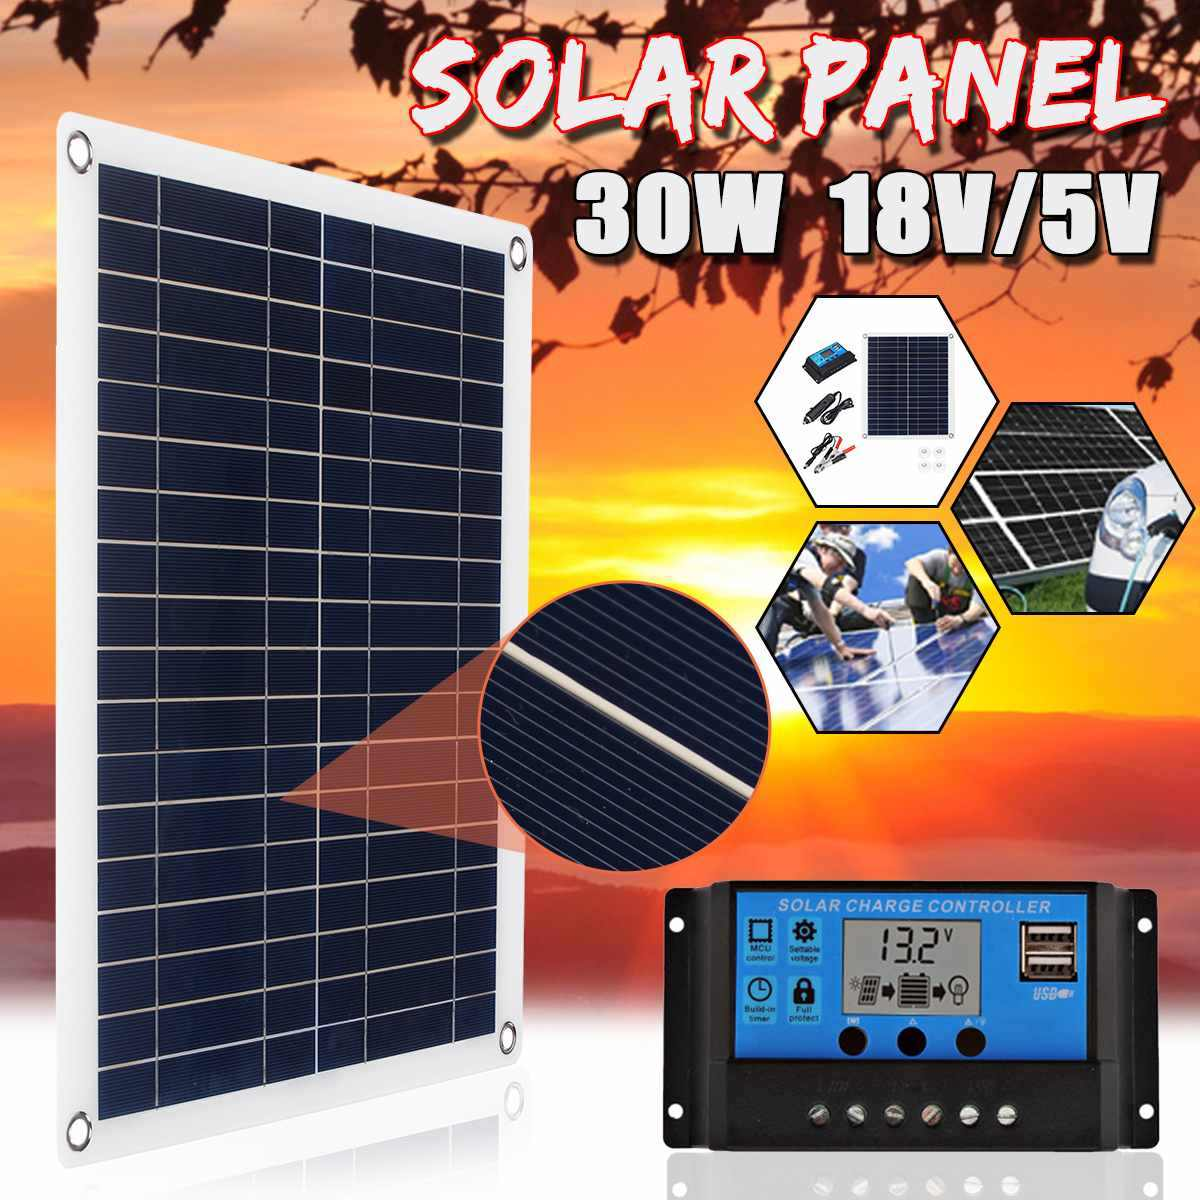 30W 18V Solar Panel Polycrystalline USB interface Car Ship Outdoor Camping Emergency Phone Charger w/Solar Charger Controller